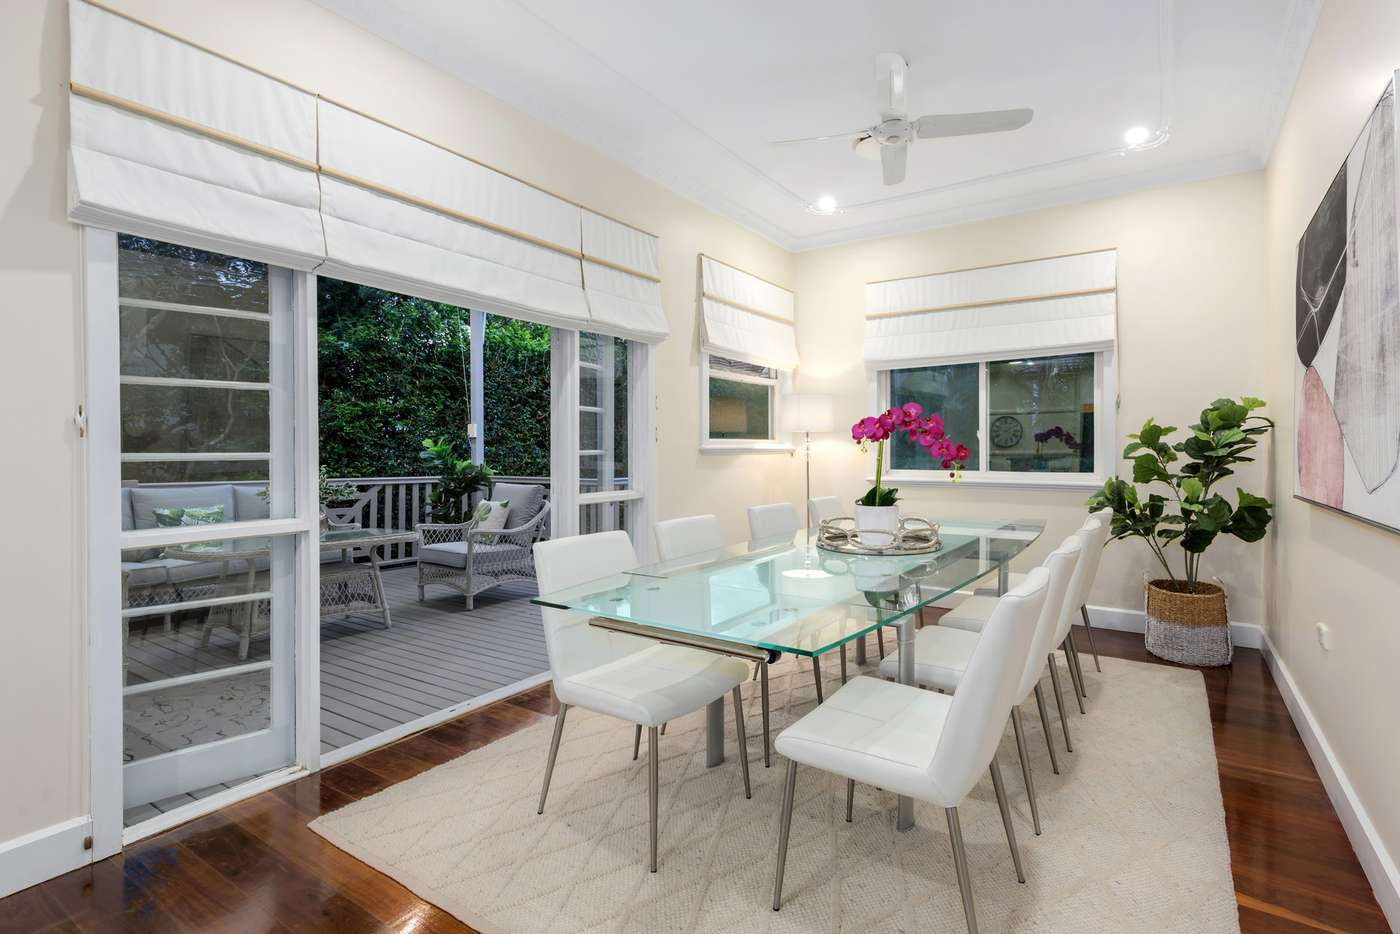 Fifth view of Homely house listing, 78 Ascot Street, Ascot QLD 4007